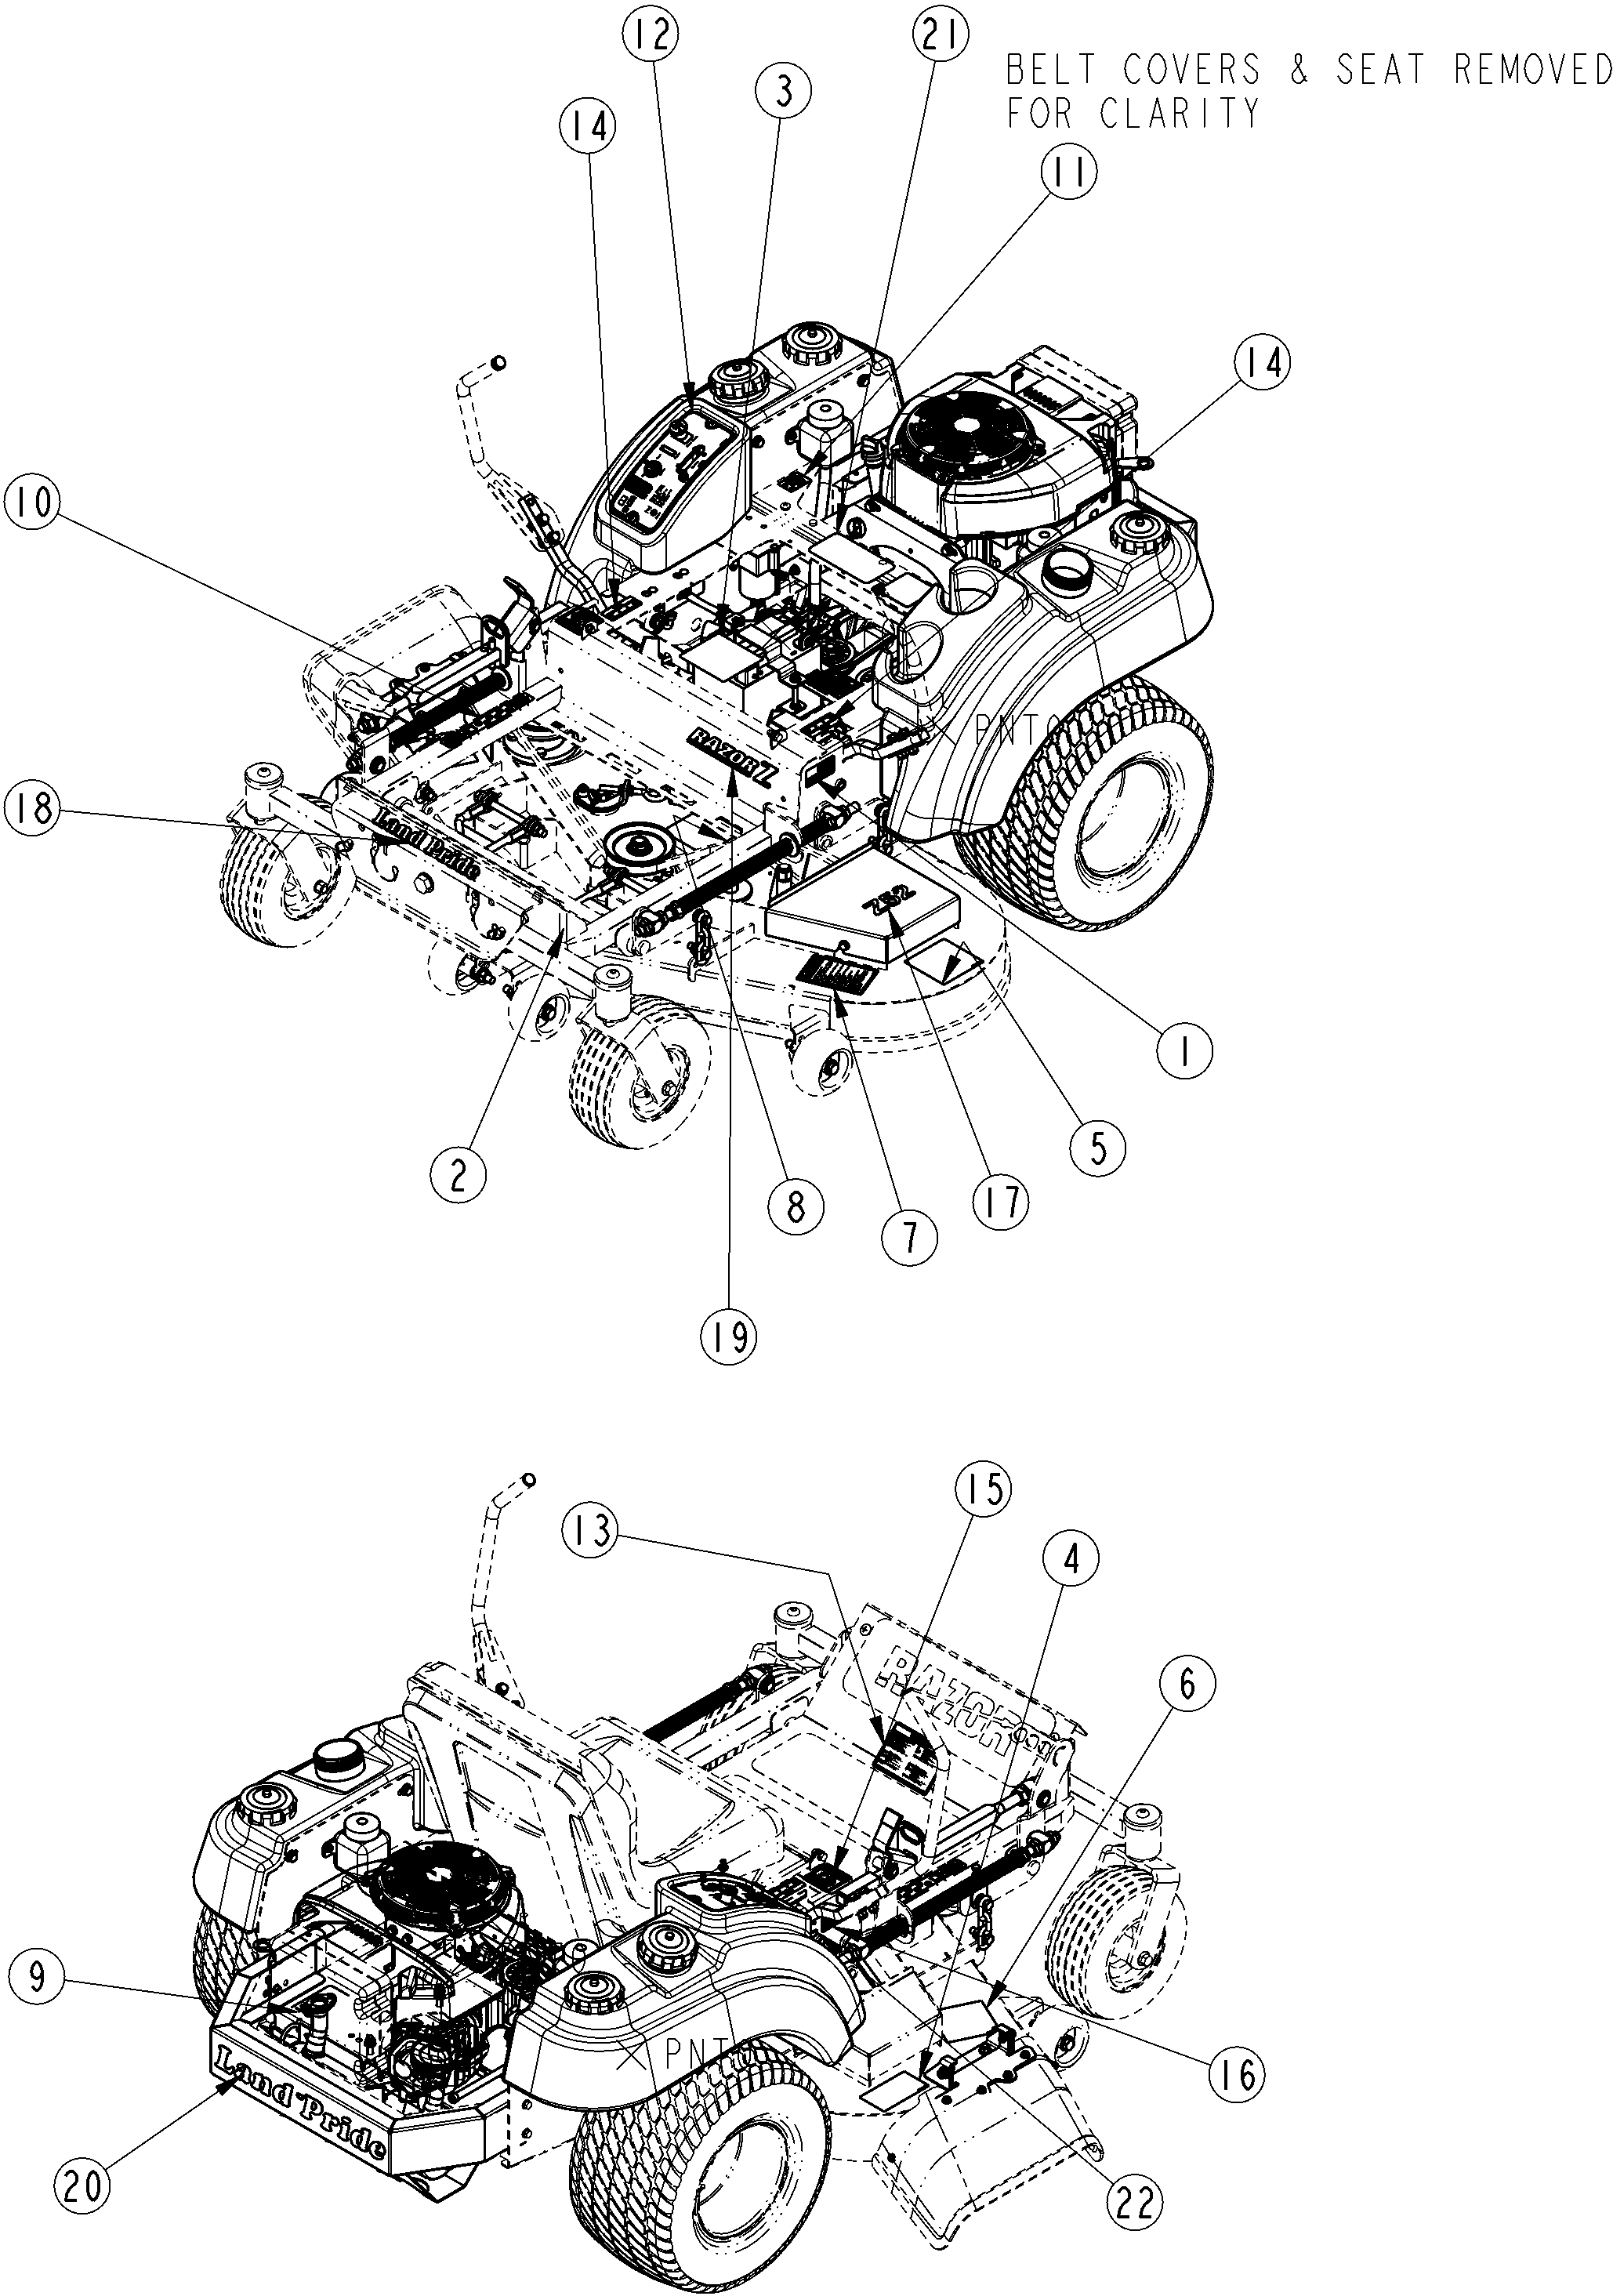 Land Pride Wiring Diagram 25 Images Razor Z44 Sn 472620 And Above Zero Turn Mower Label Placement Assembly